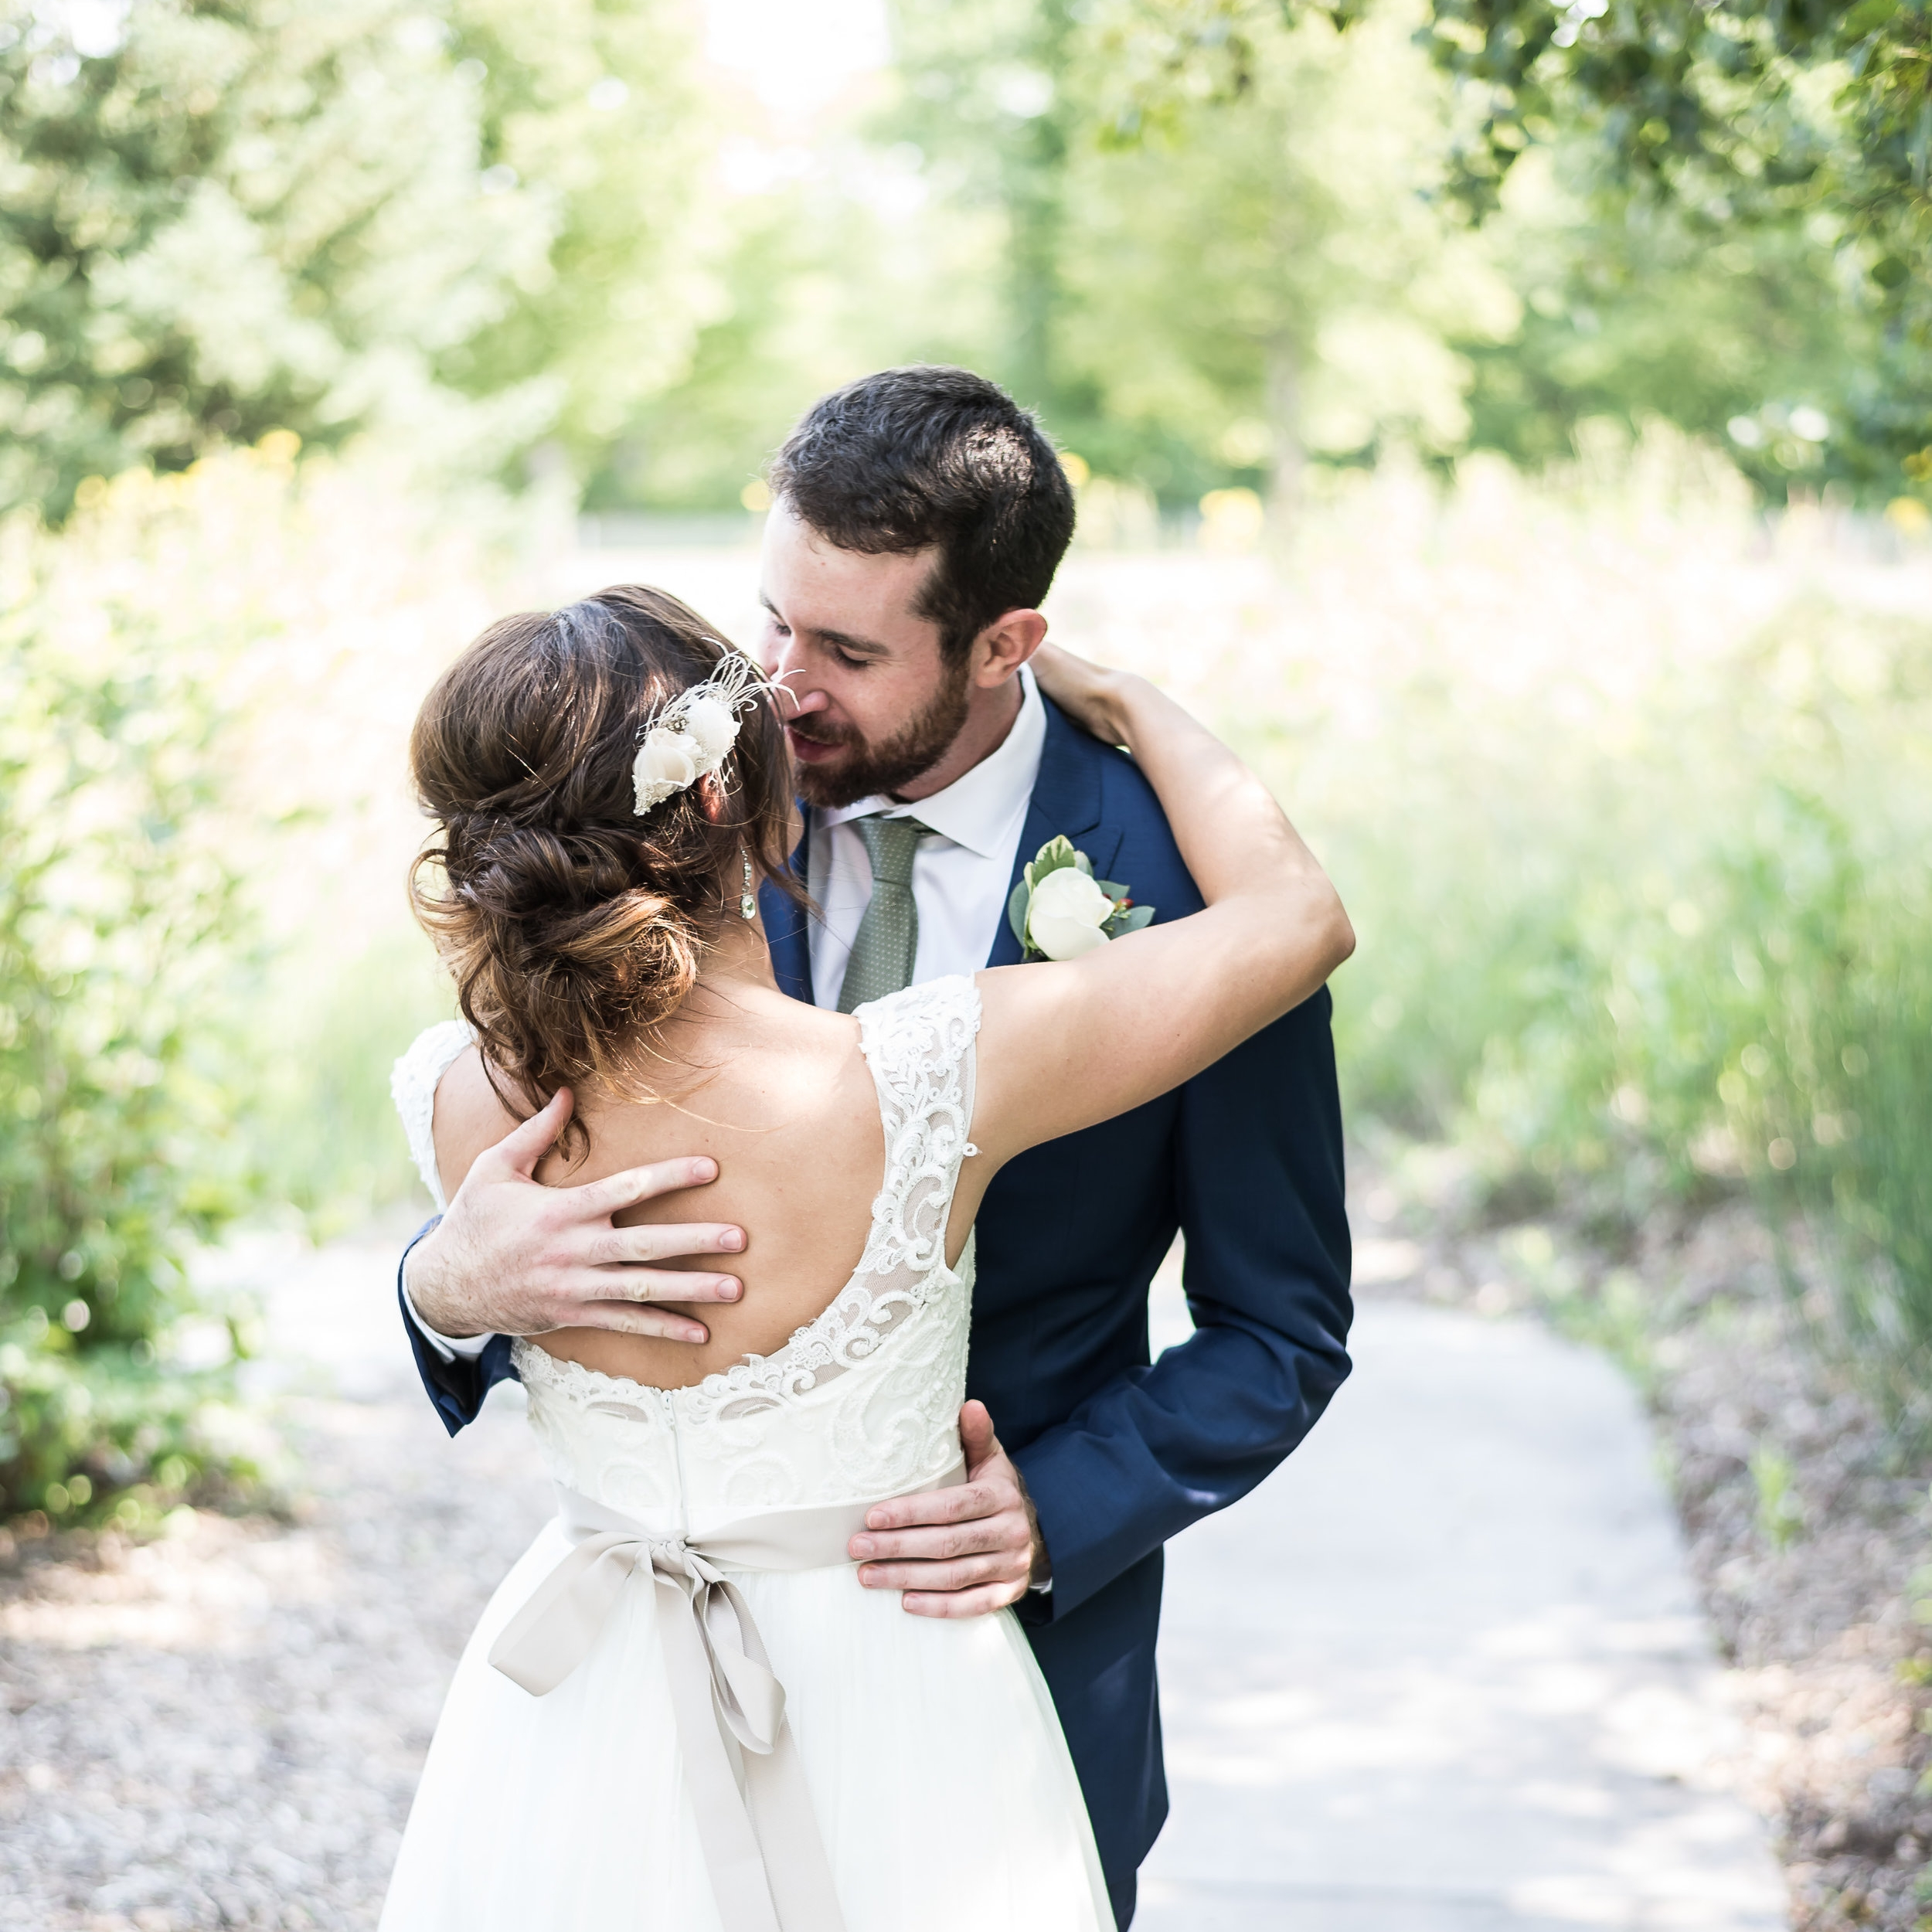 Hourly Packages - Don't need all the bells and whistles? These hourly packages include only what your really want: a few dedicated hours to keep your wedding-day memories forever. Includes one photographer and an engagement session.Starting at $2,000